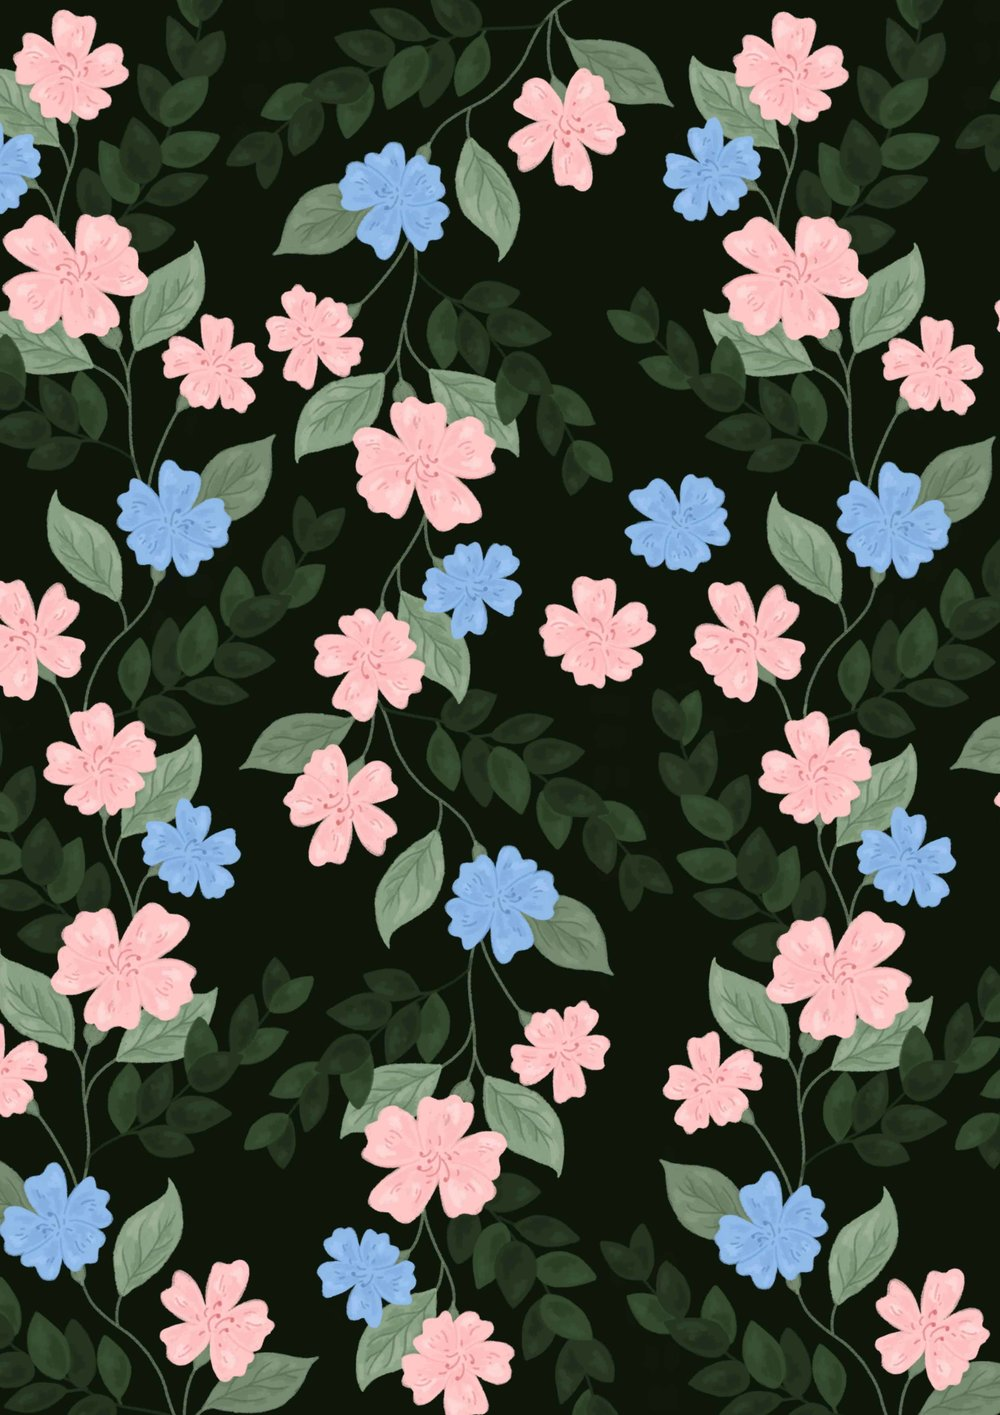 Forest green floral pattern with pink and blue flowers.